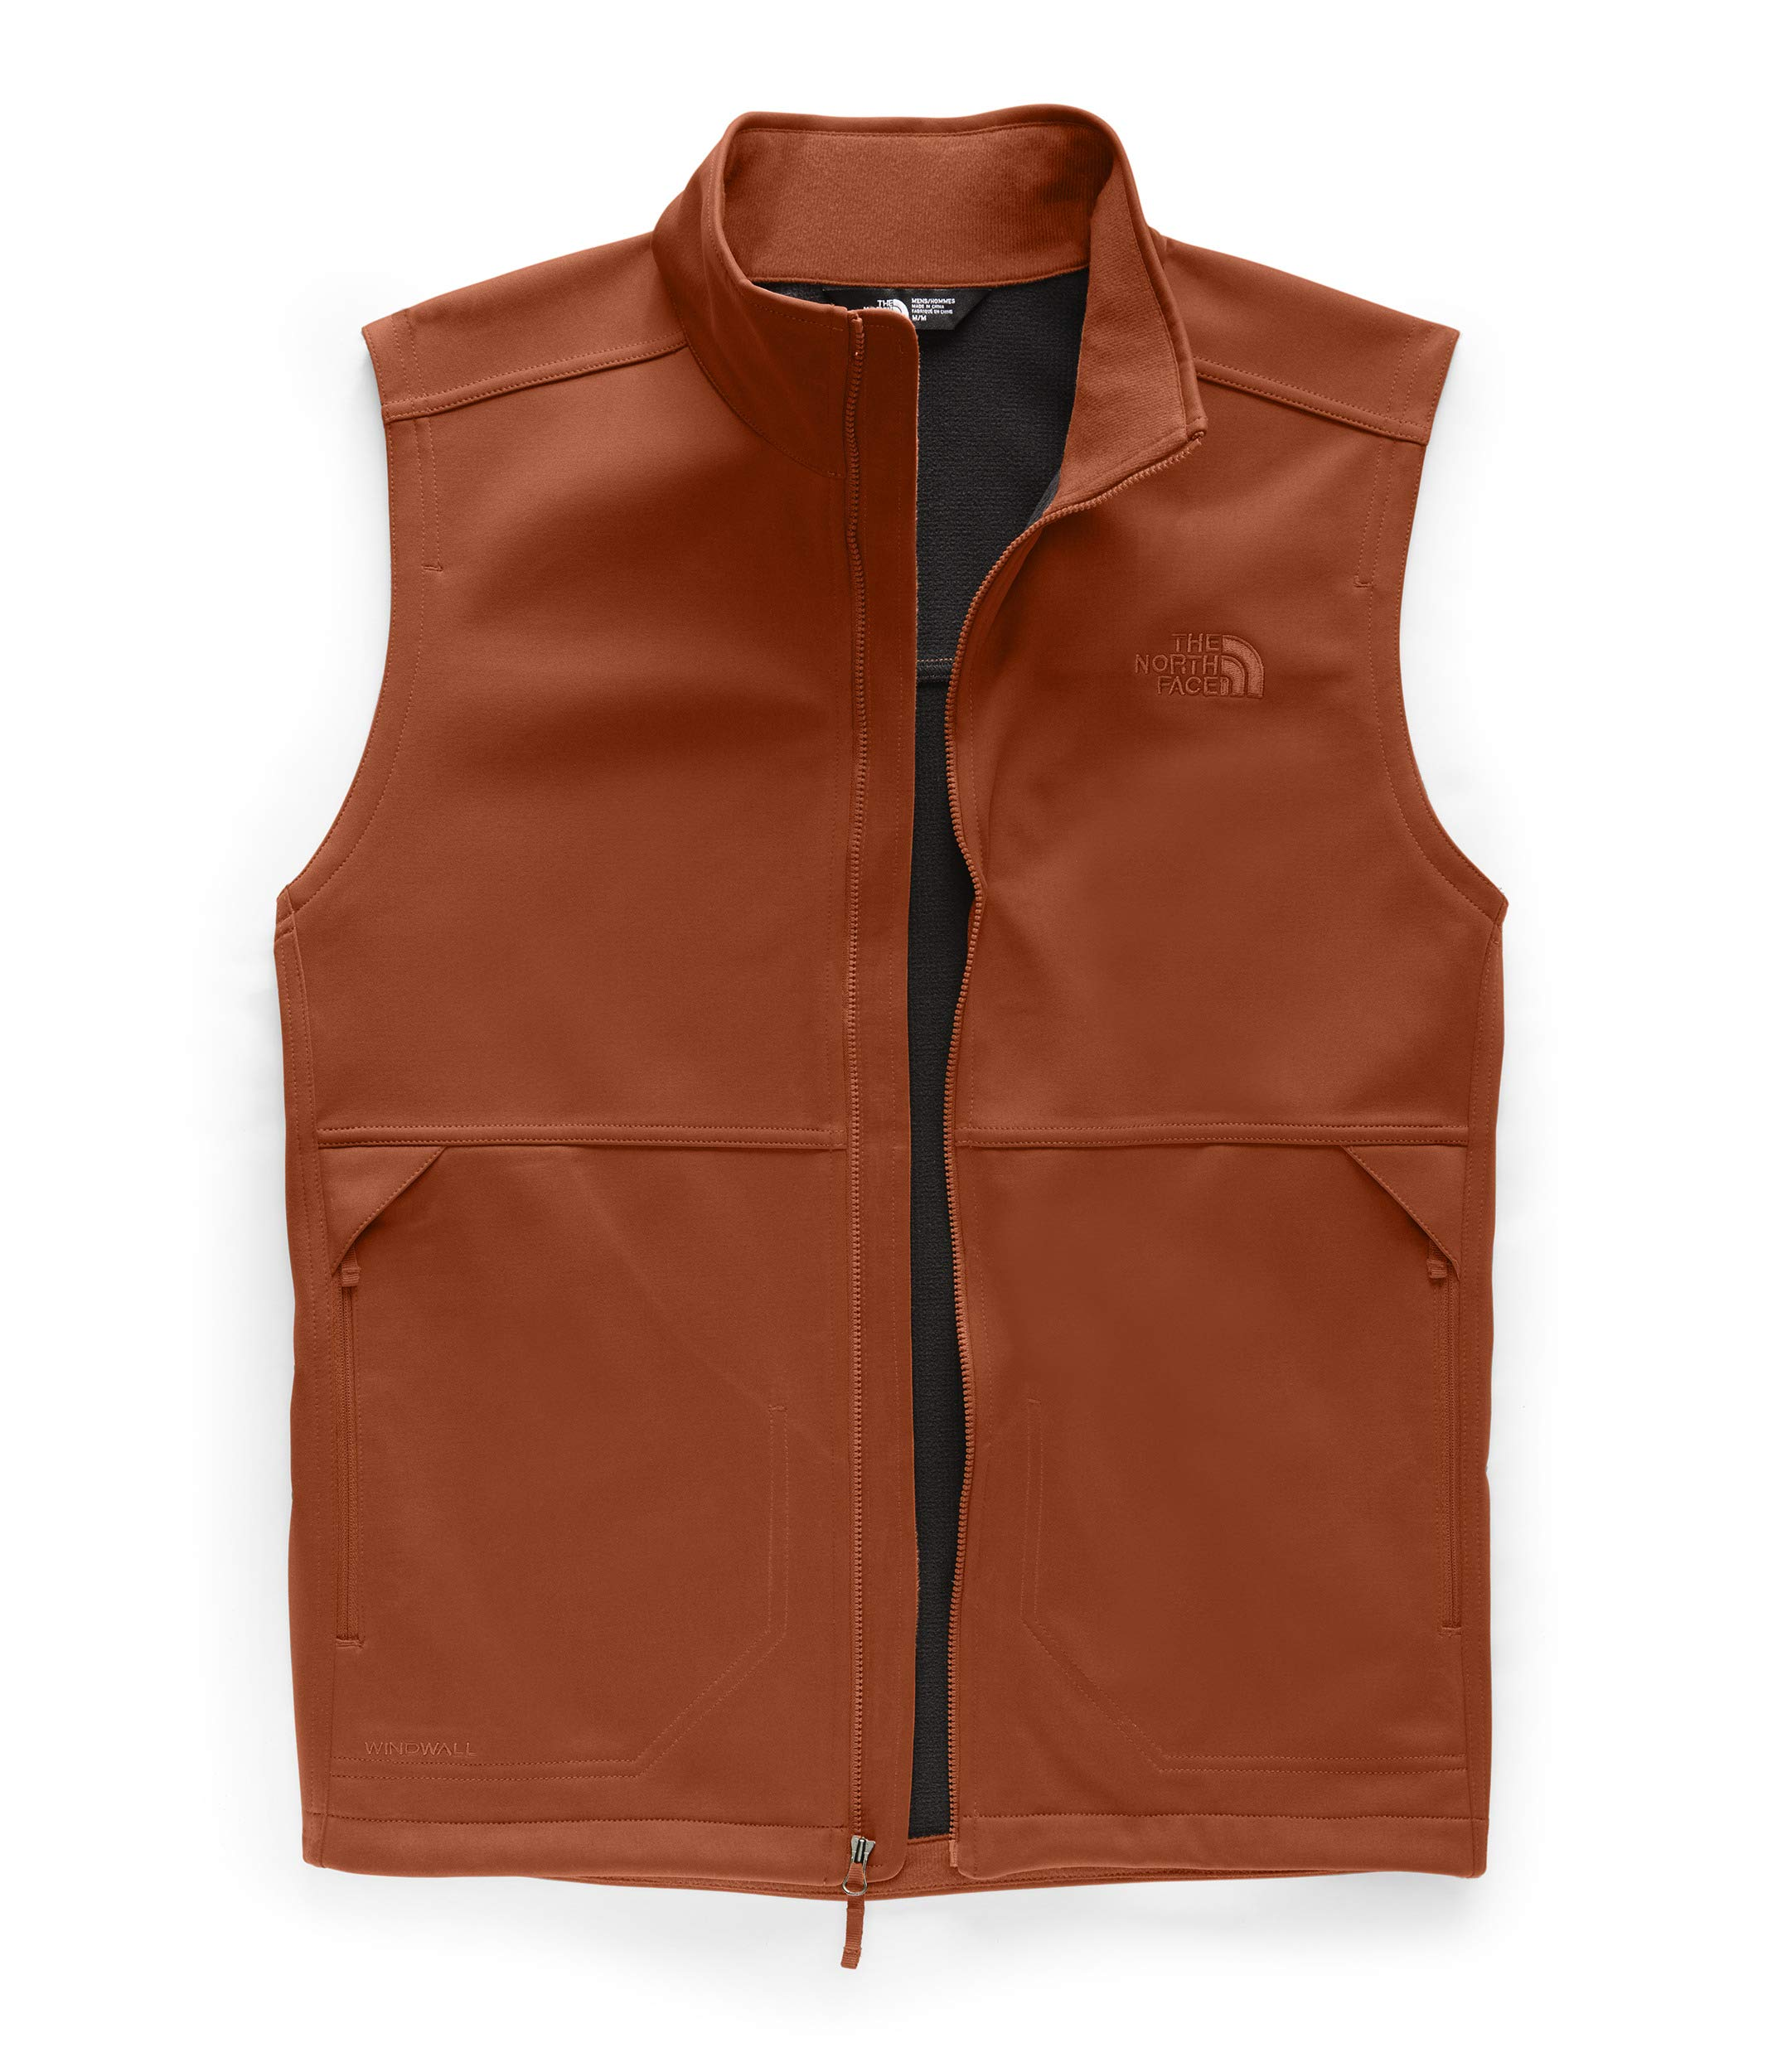 The North Face Men's Apex Canyonwall Vest by The North Face